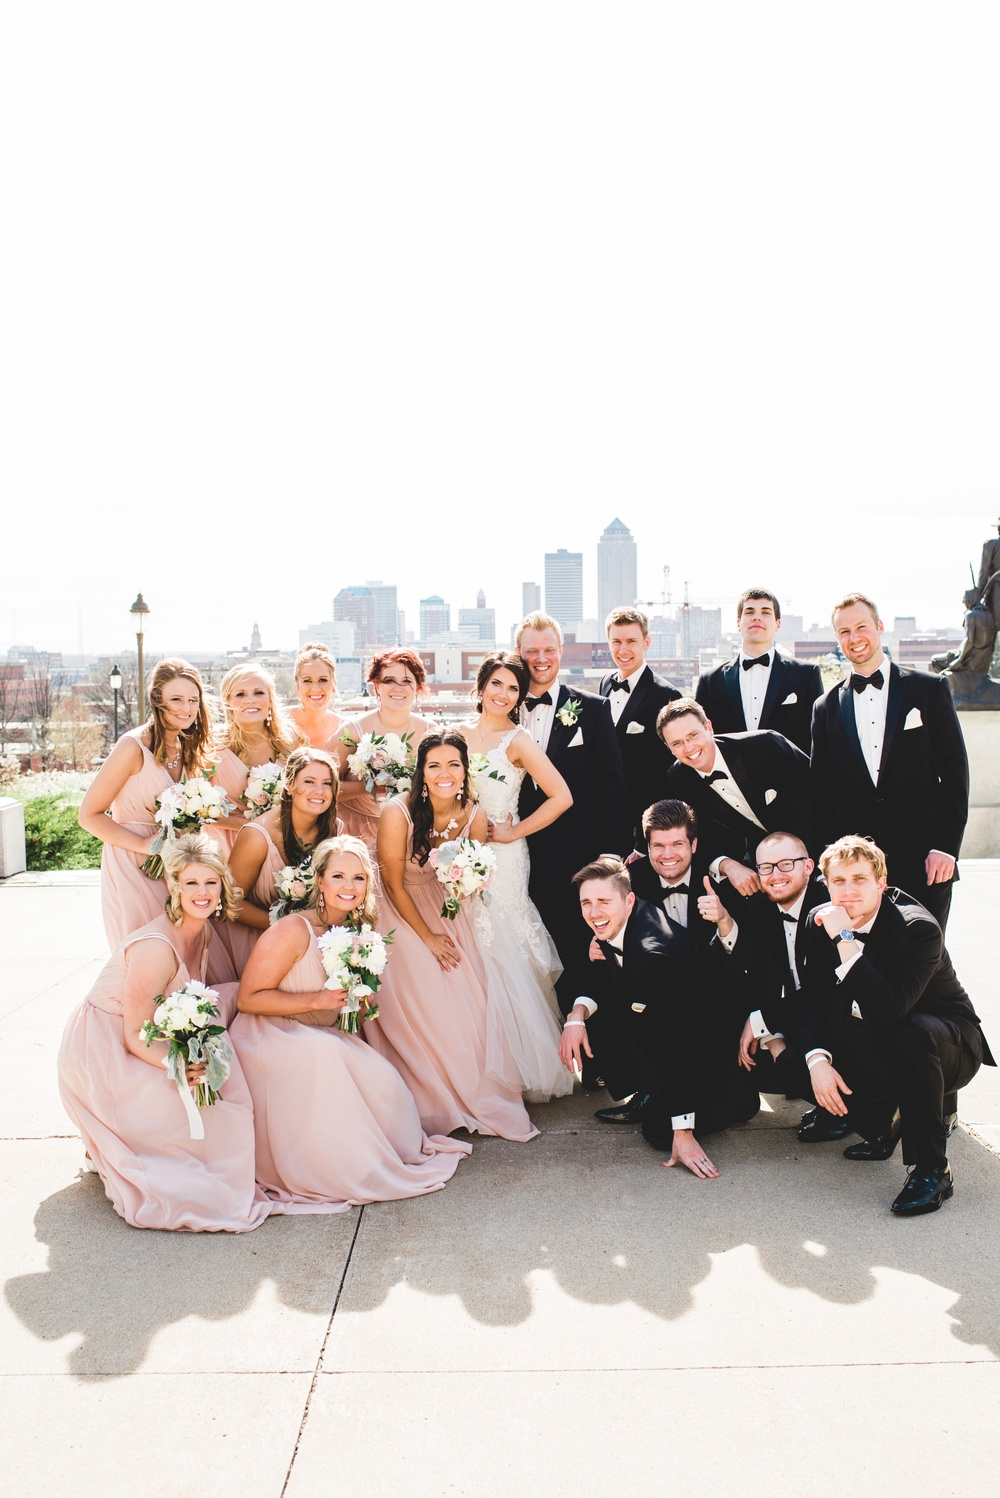 Downtown Des Moines Wedding Photographer_2113.jpg